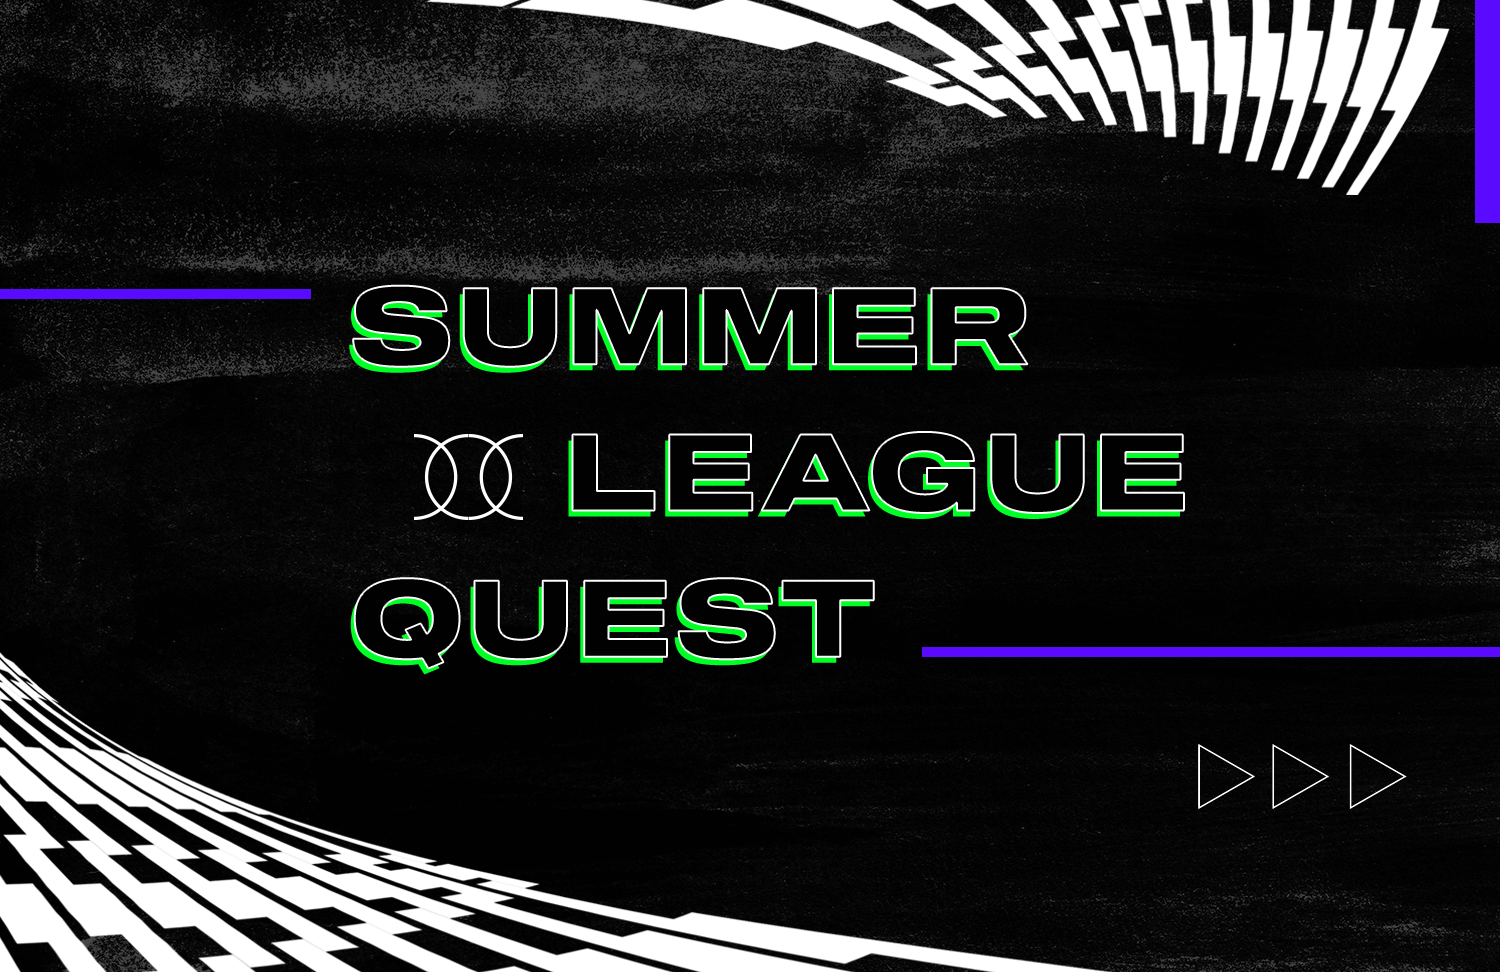 This is your chance to earn a Moment from one of the rising stars of NBA Summer League 2021.